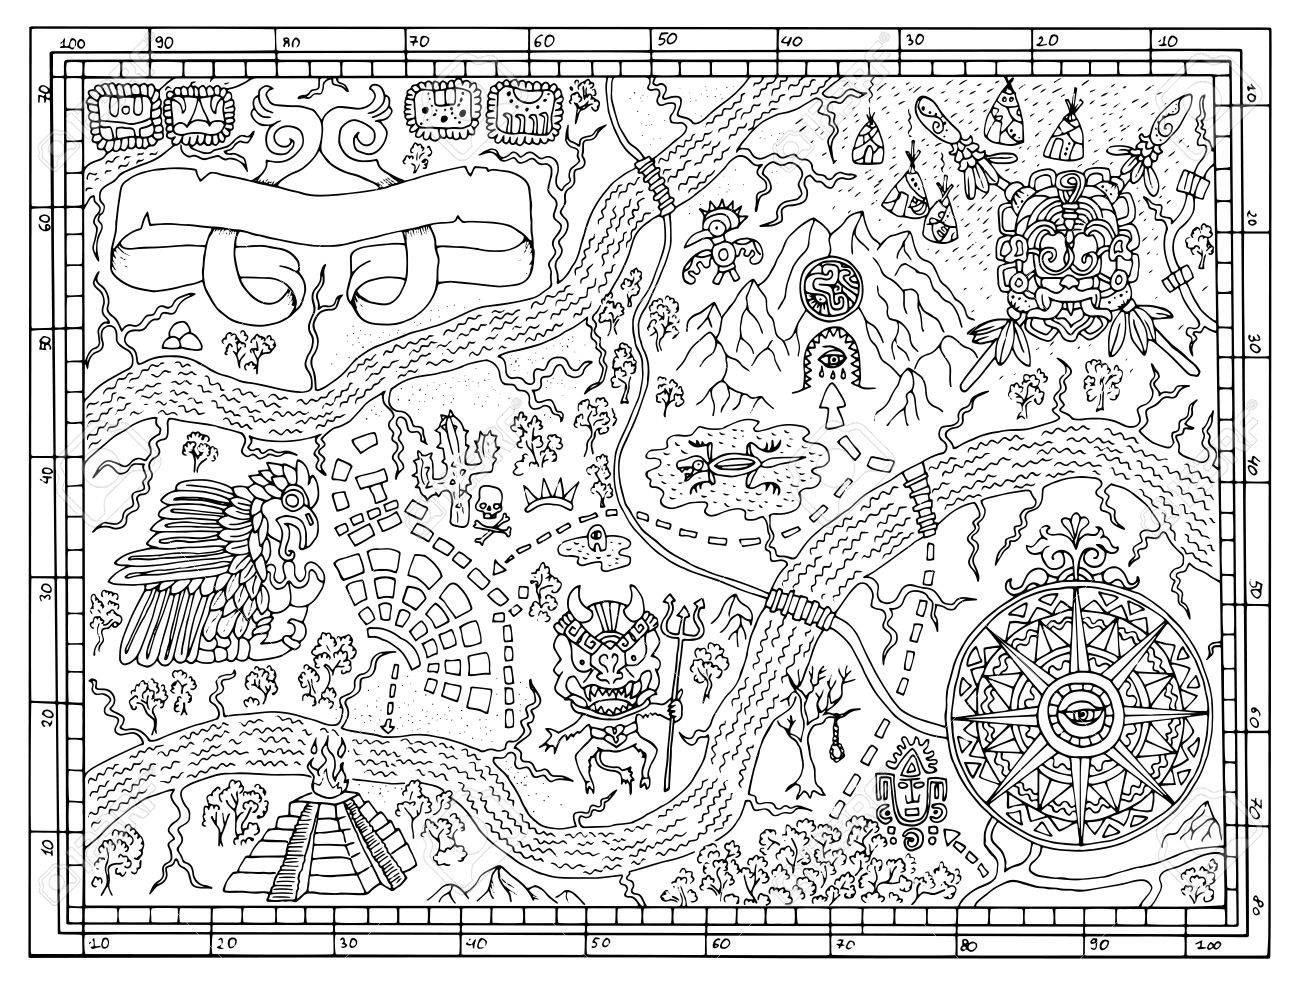 Ancient Maya or pirate map for adult or kids coloring book. Hand..